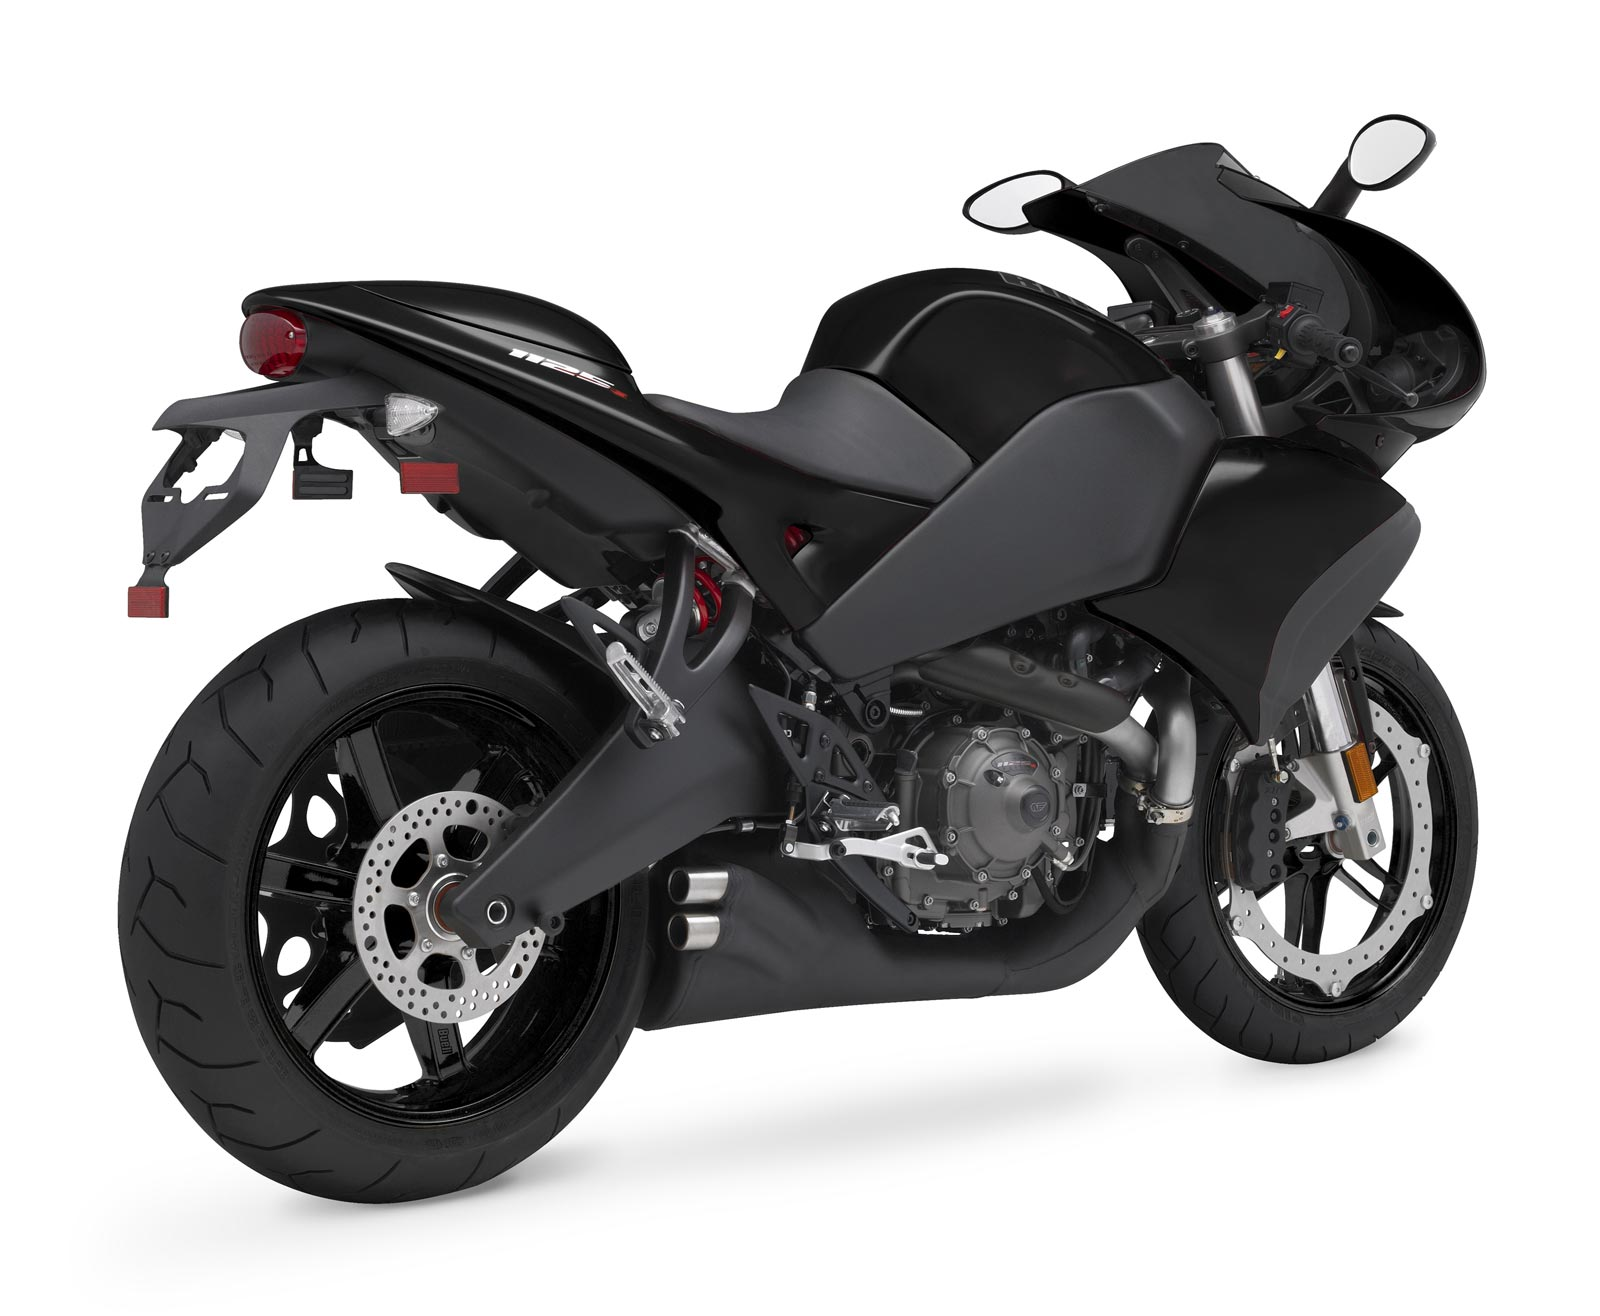 2009 Buell Motorcycle 1125R Picture